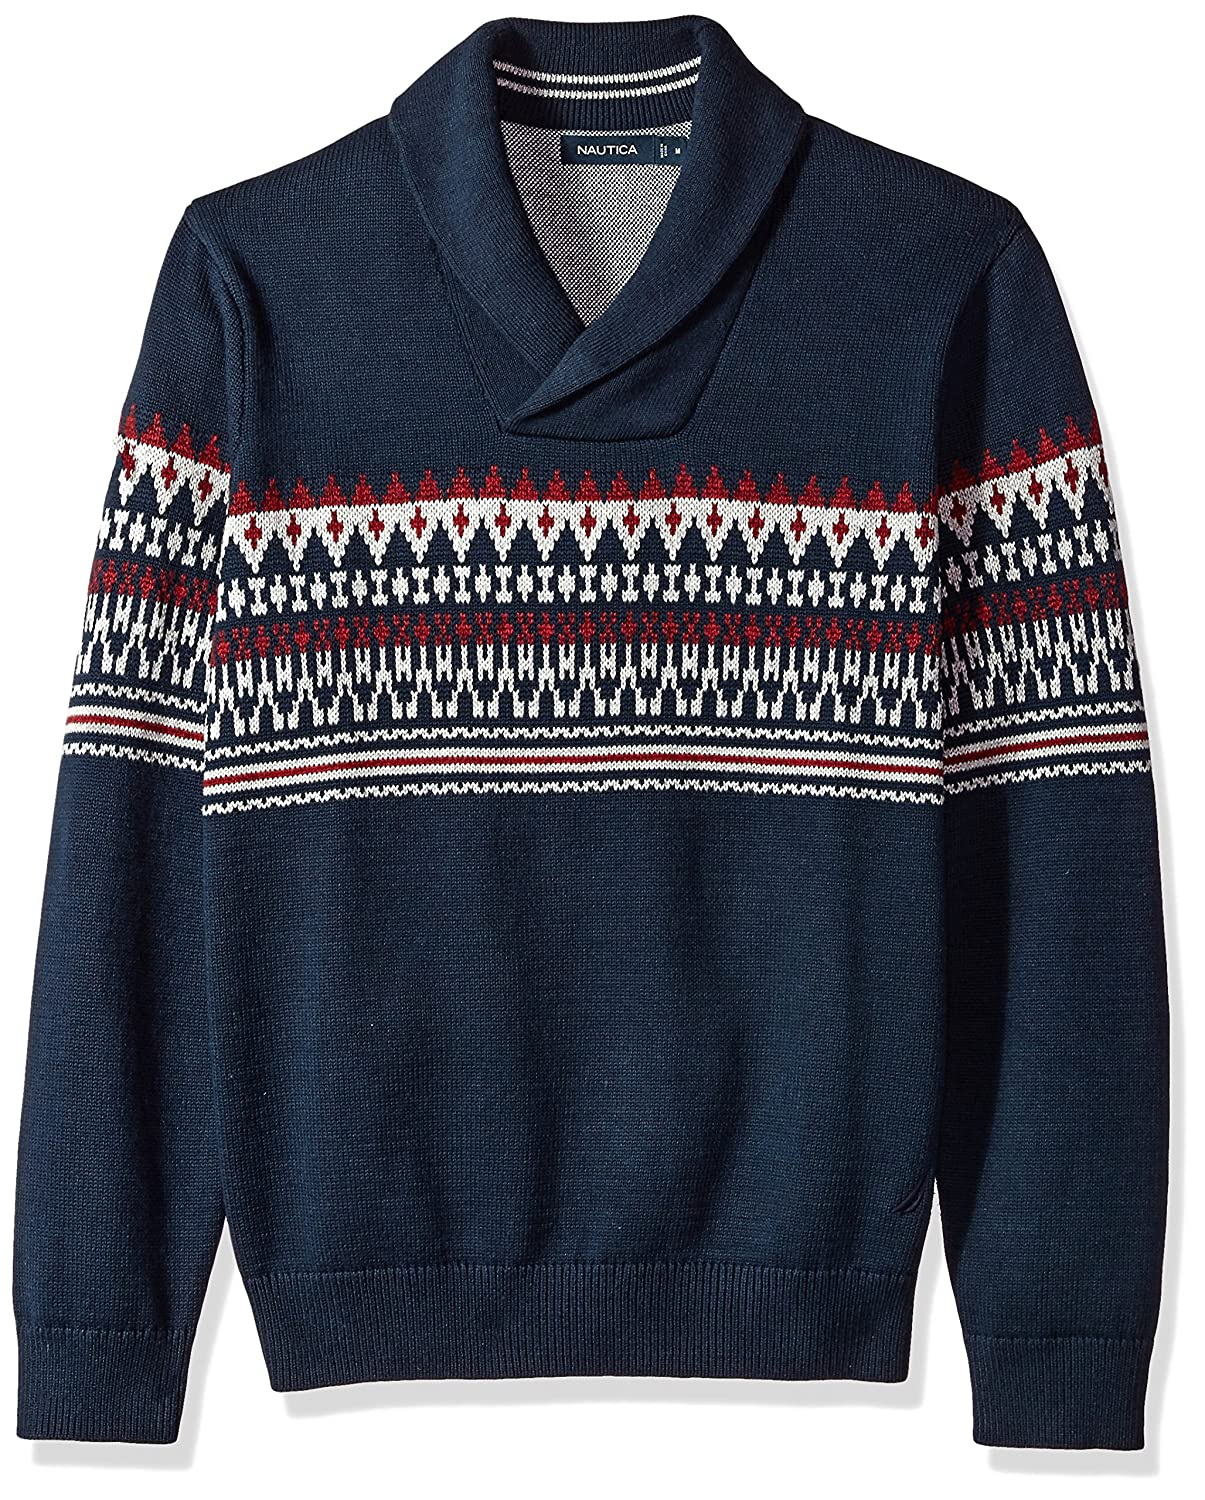 1940s Mens Clothing Nautica Mens Long Sleeve Crew Neck Fairisle Sweater $89.50 AT vintagedancer.com